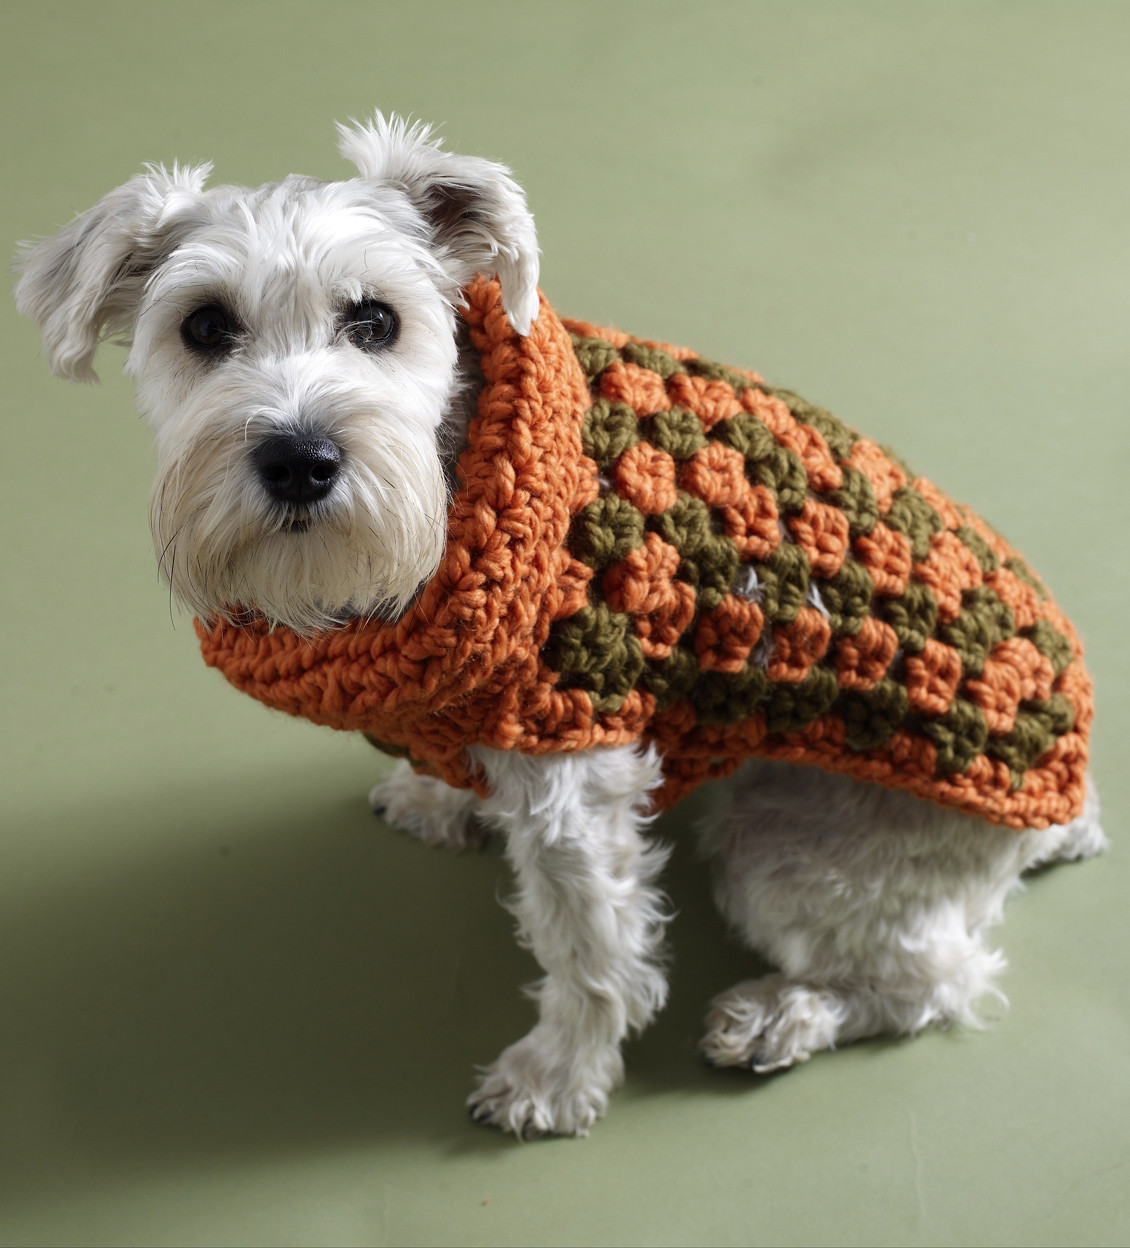 Fresh Keep Your Dog Warm with A Crochet Dog Sweater Crochet Free Knitting Pattern for Dog Sweater Of Amazing 49 Photos Free Knitting Pattern for Dog Sweater